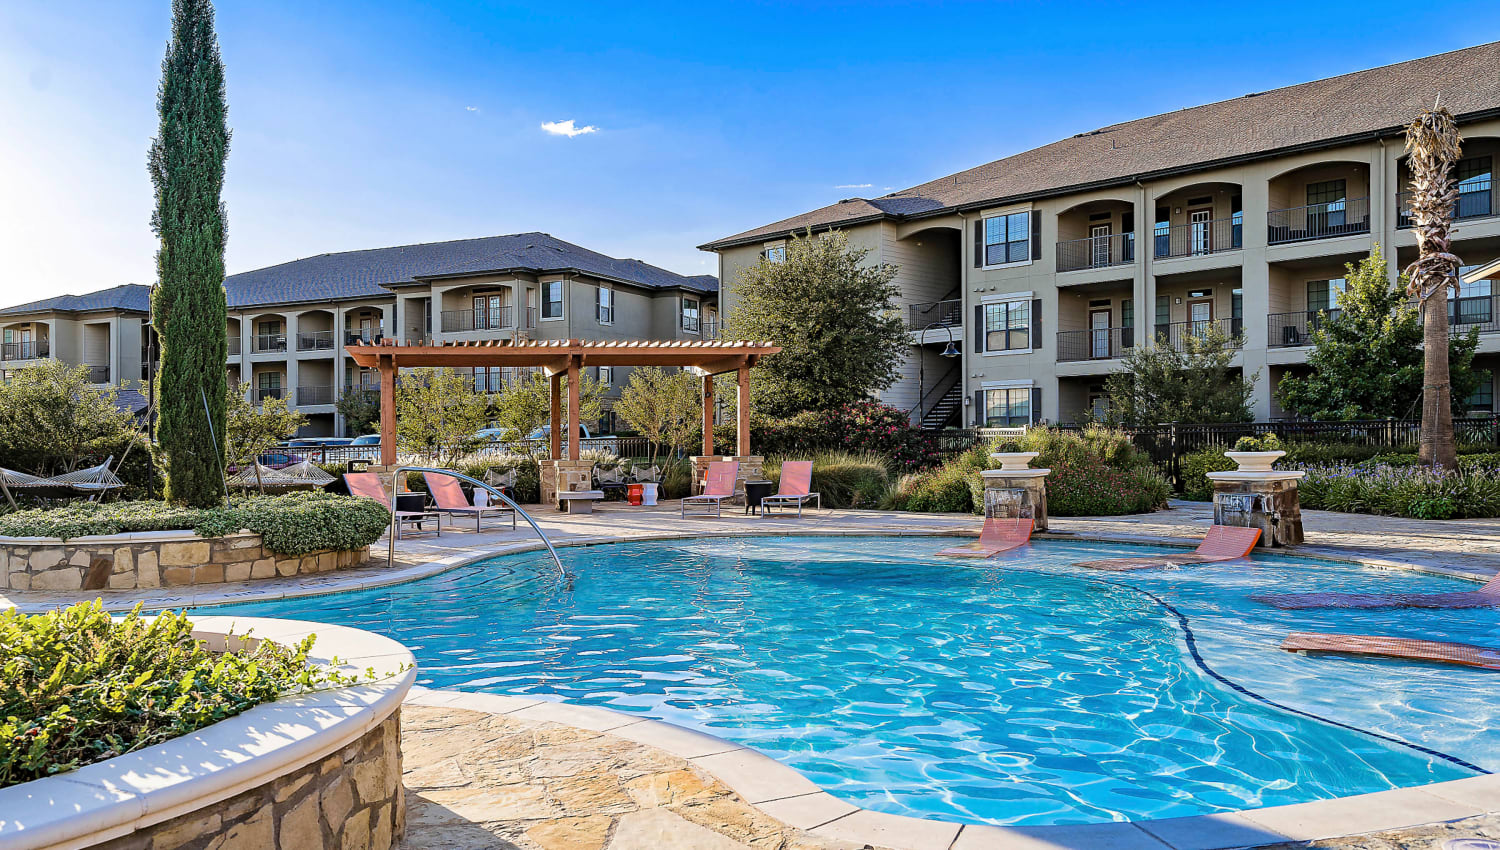 Resort-style swimming pool on a beautiful morning at Sedona Ranch in Odessa, Texas